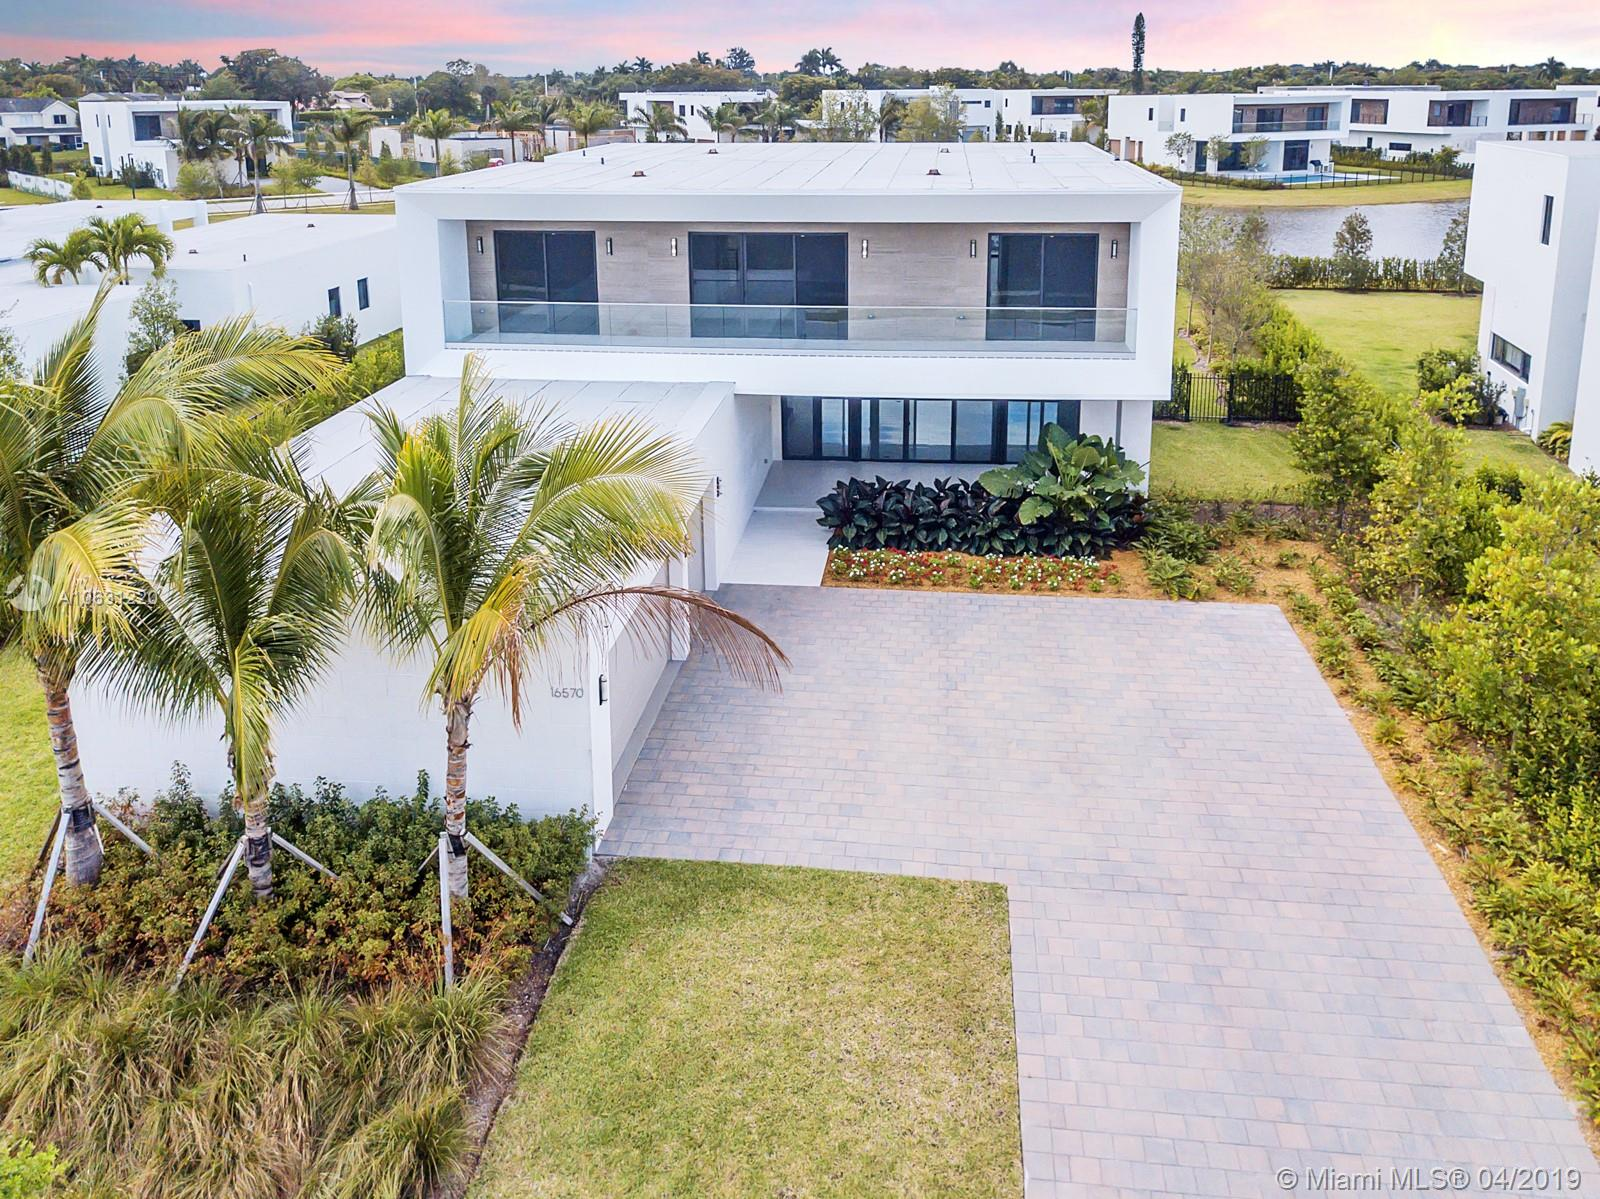 Brand NEW SUPERB UPGRADED Luxury home ready to move in with 5 spacious bedrooms plus maid quarters, 6 1/2 bathrooms, 3 car garage and a huge parking driveway modern gem designed by Chad Oppenheim. Sitting on a SUPERB 20,756 SF lot that was carefully chosen by owners is considered the best one at Botaniko because it has water views from every single room, The amazing kitchen includes an integrated SubZero wide refrigerator and freezer and a Bosch built-in automatic coffee maker, also a wet bar Cooler. Weston is ranked #8 of the best places to live in America enjoy it than having a covered patio with an amazing summer kitchen this swimming pool has special requires distance between the house and the pool much more than any back yard paver floor Splash, LOOK NO FURTHER!!! Paradise on earth...